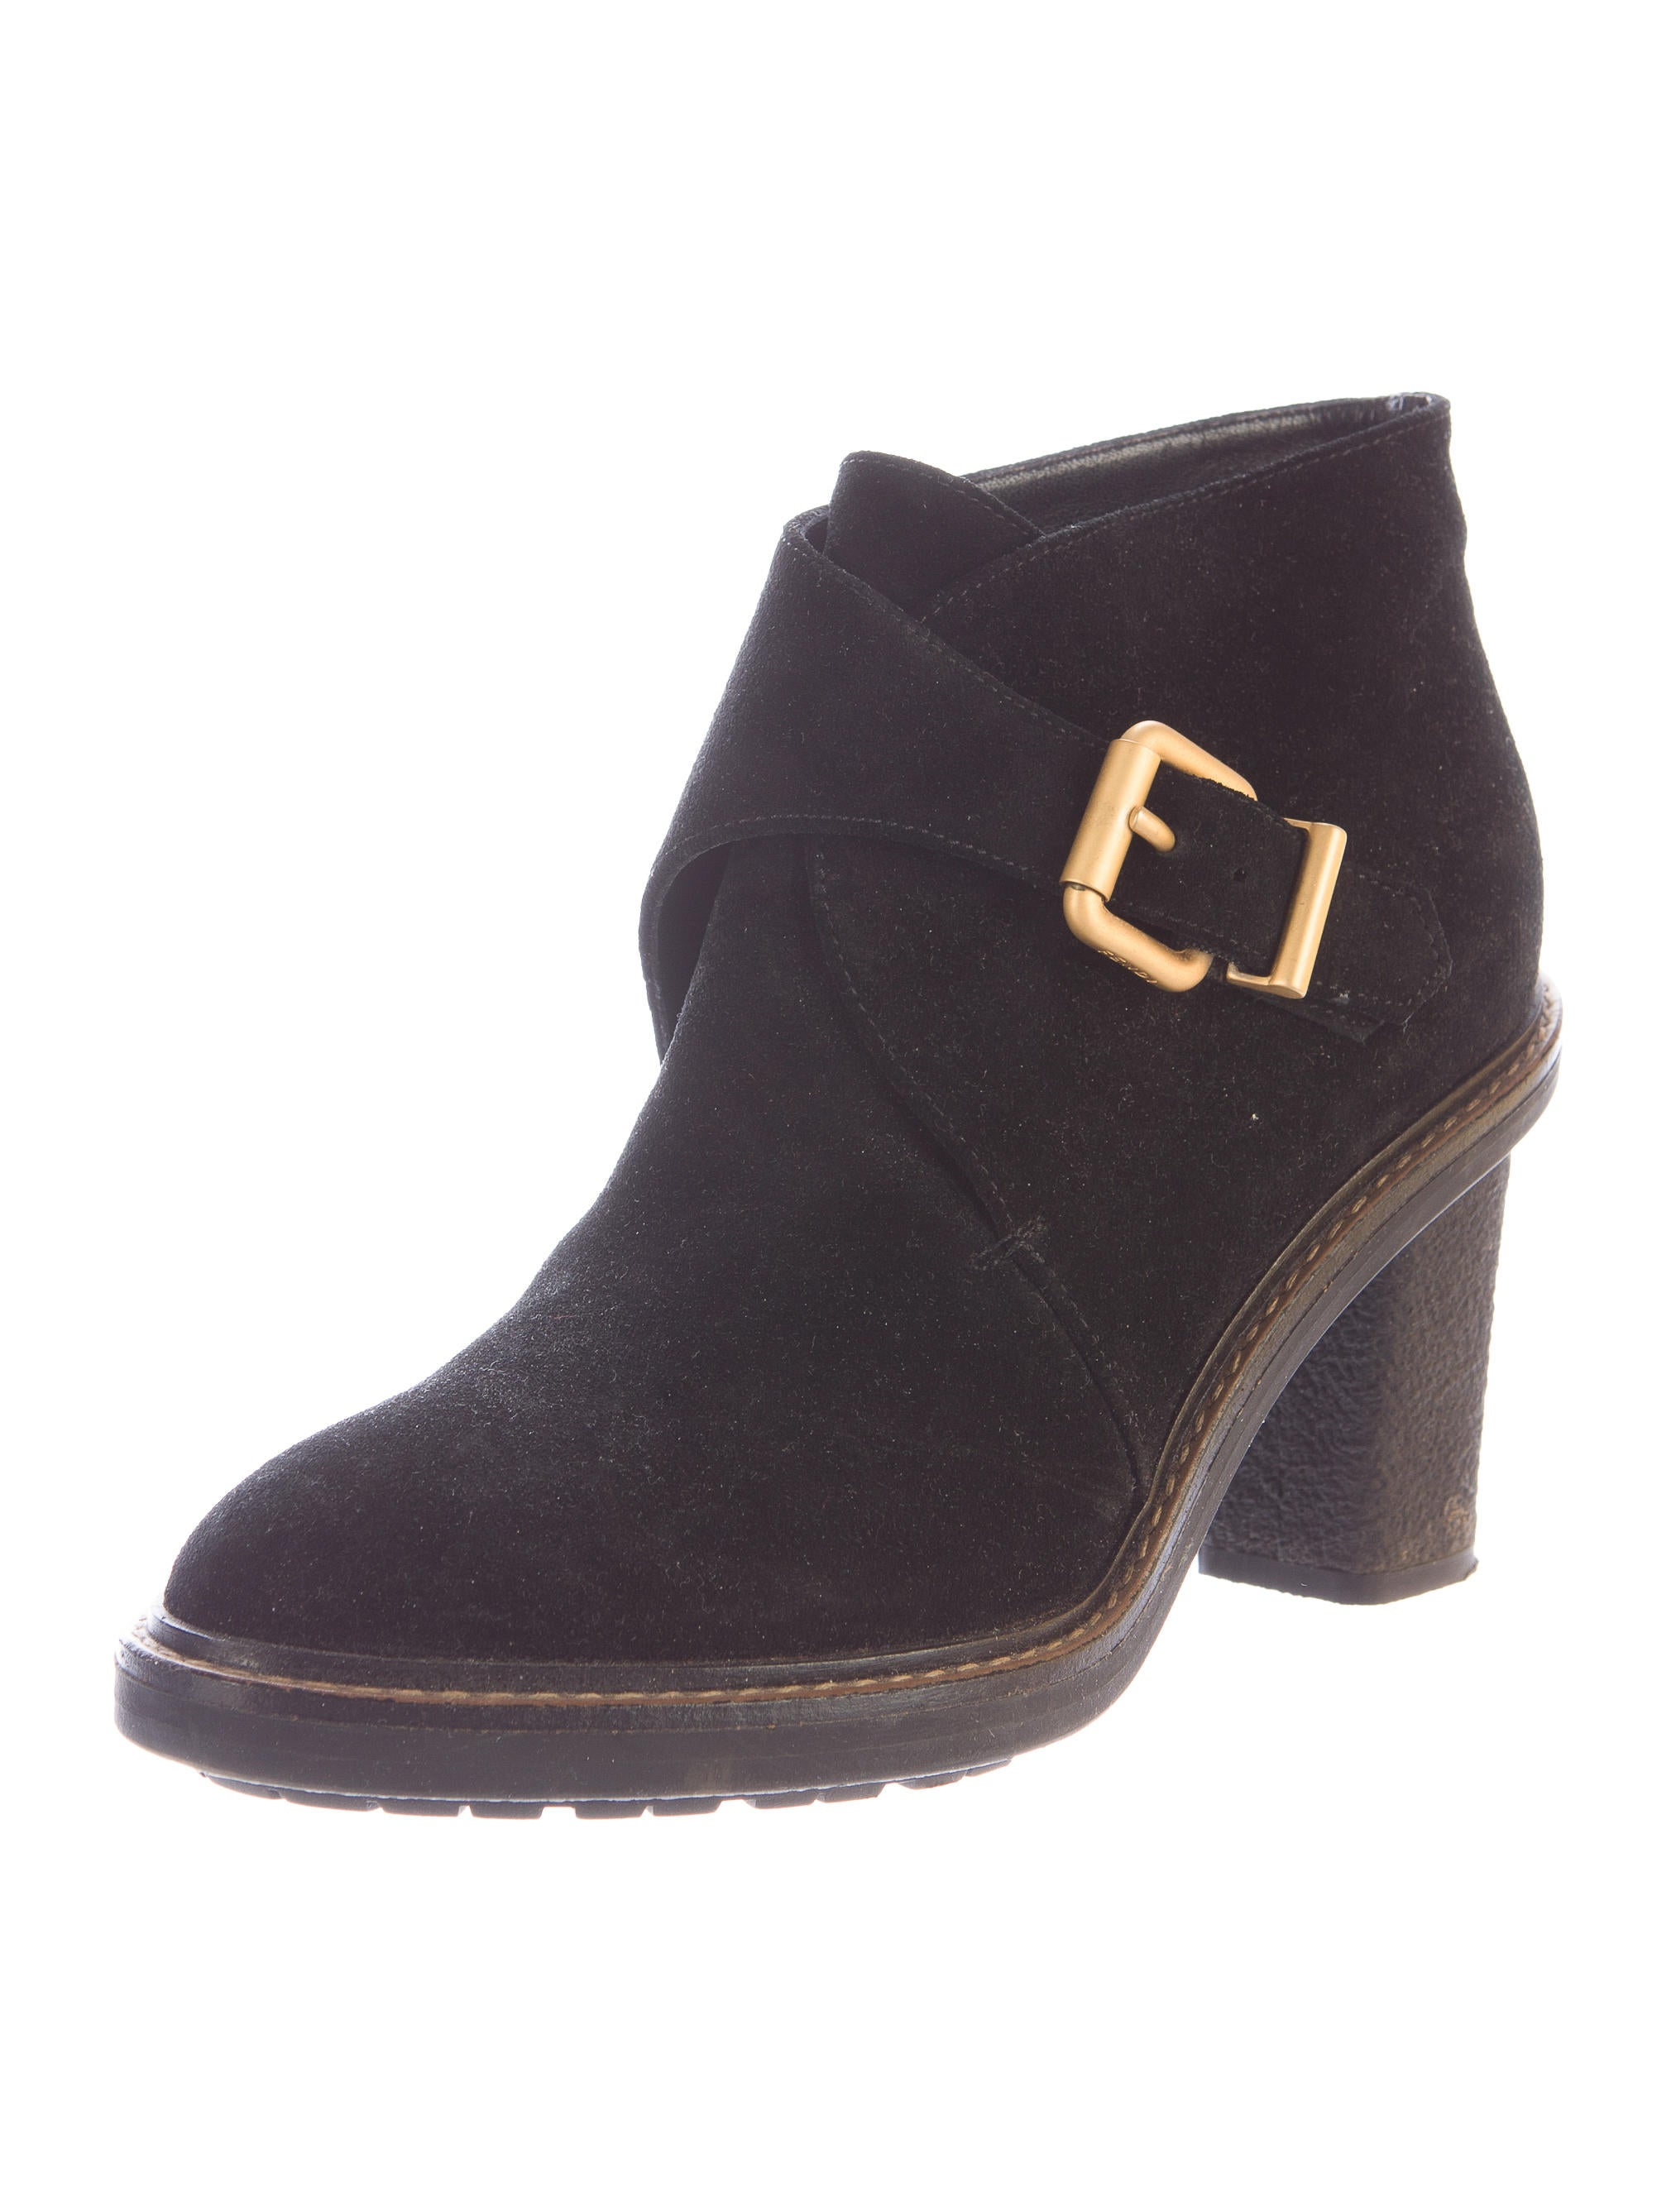 Find great deals on eBay for Ankle Strap Boots in Women's Shoes and Boots. Shop with confidence.